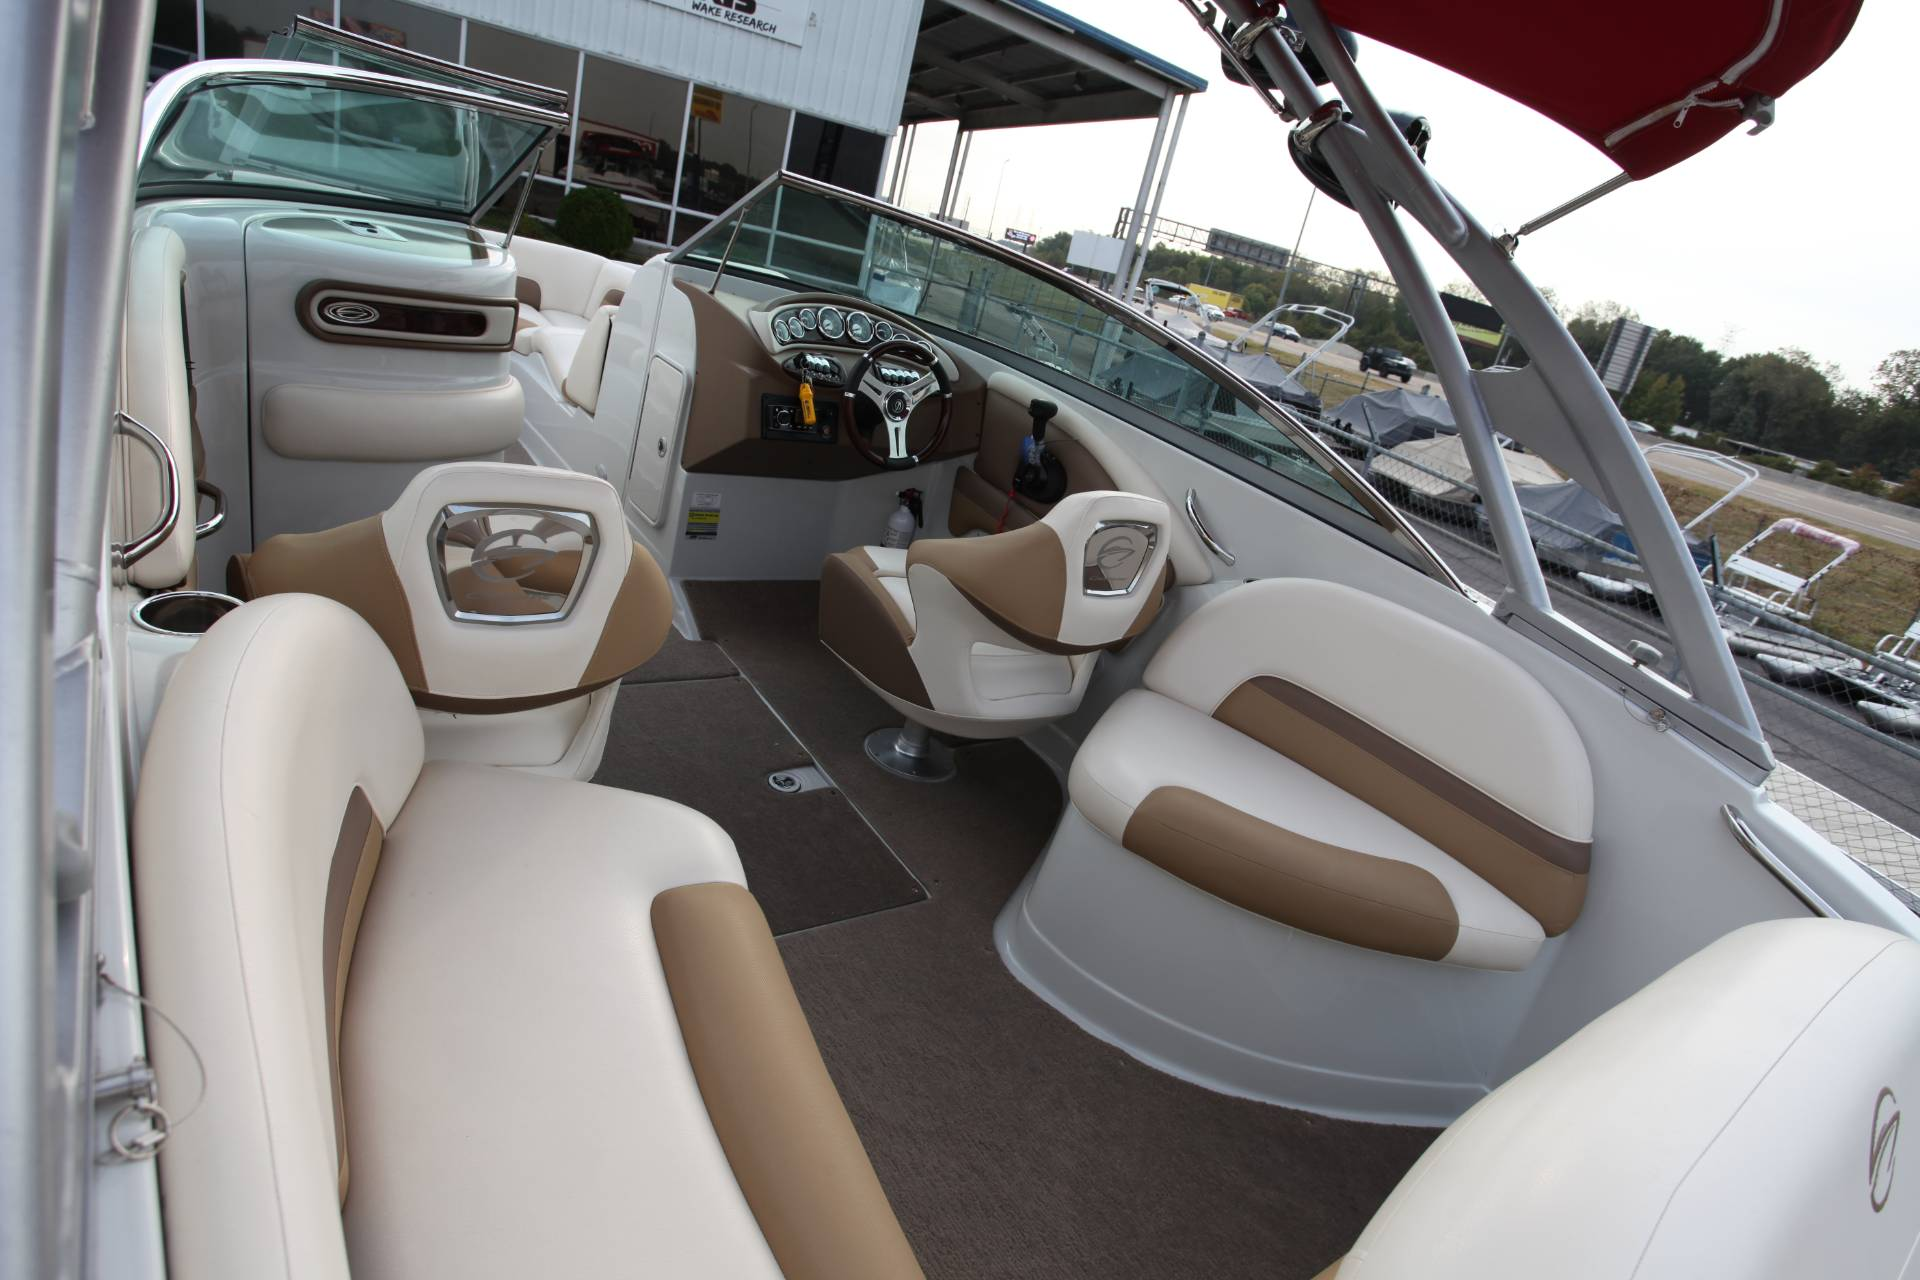 2015 Crownline Eclipse E4 in Memphis, Tennessee - Photo 12